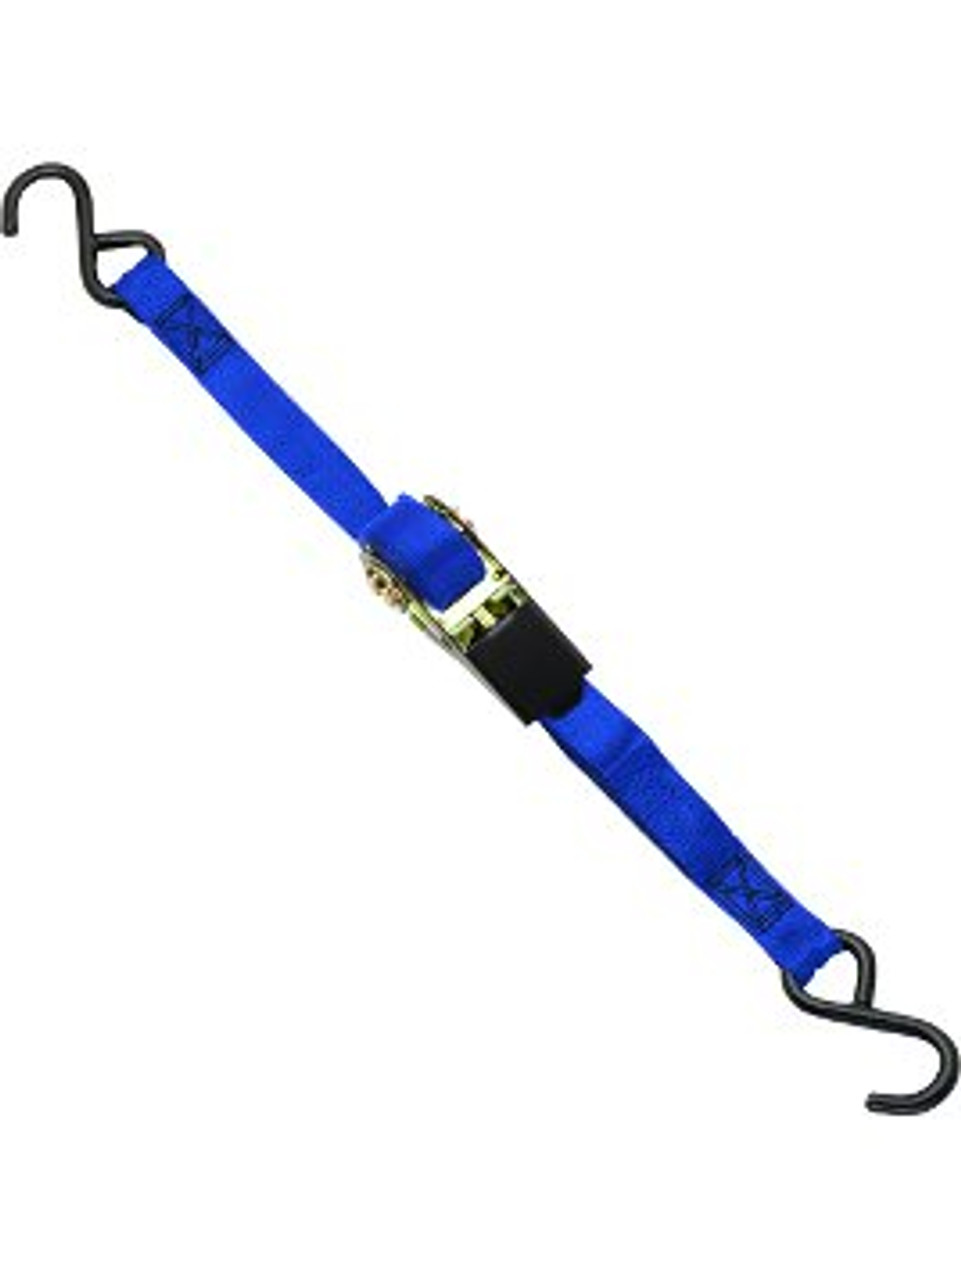 "RTS-114 --- Standard Duty Tie Down Strap with Ratchet - S Hook End Fittings - 1"" x 15'"